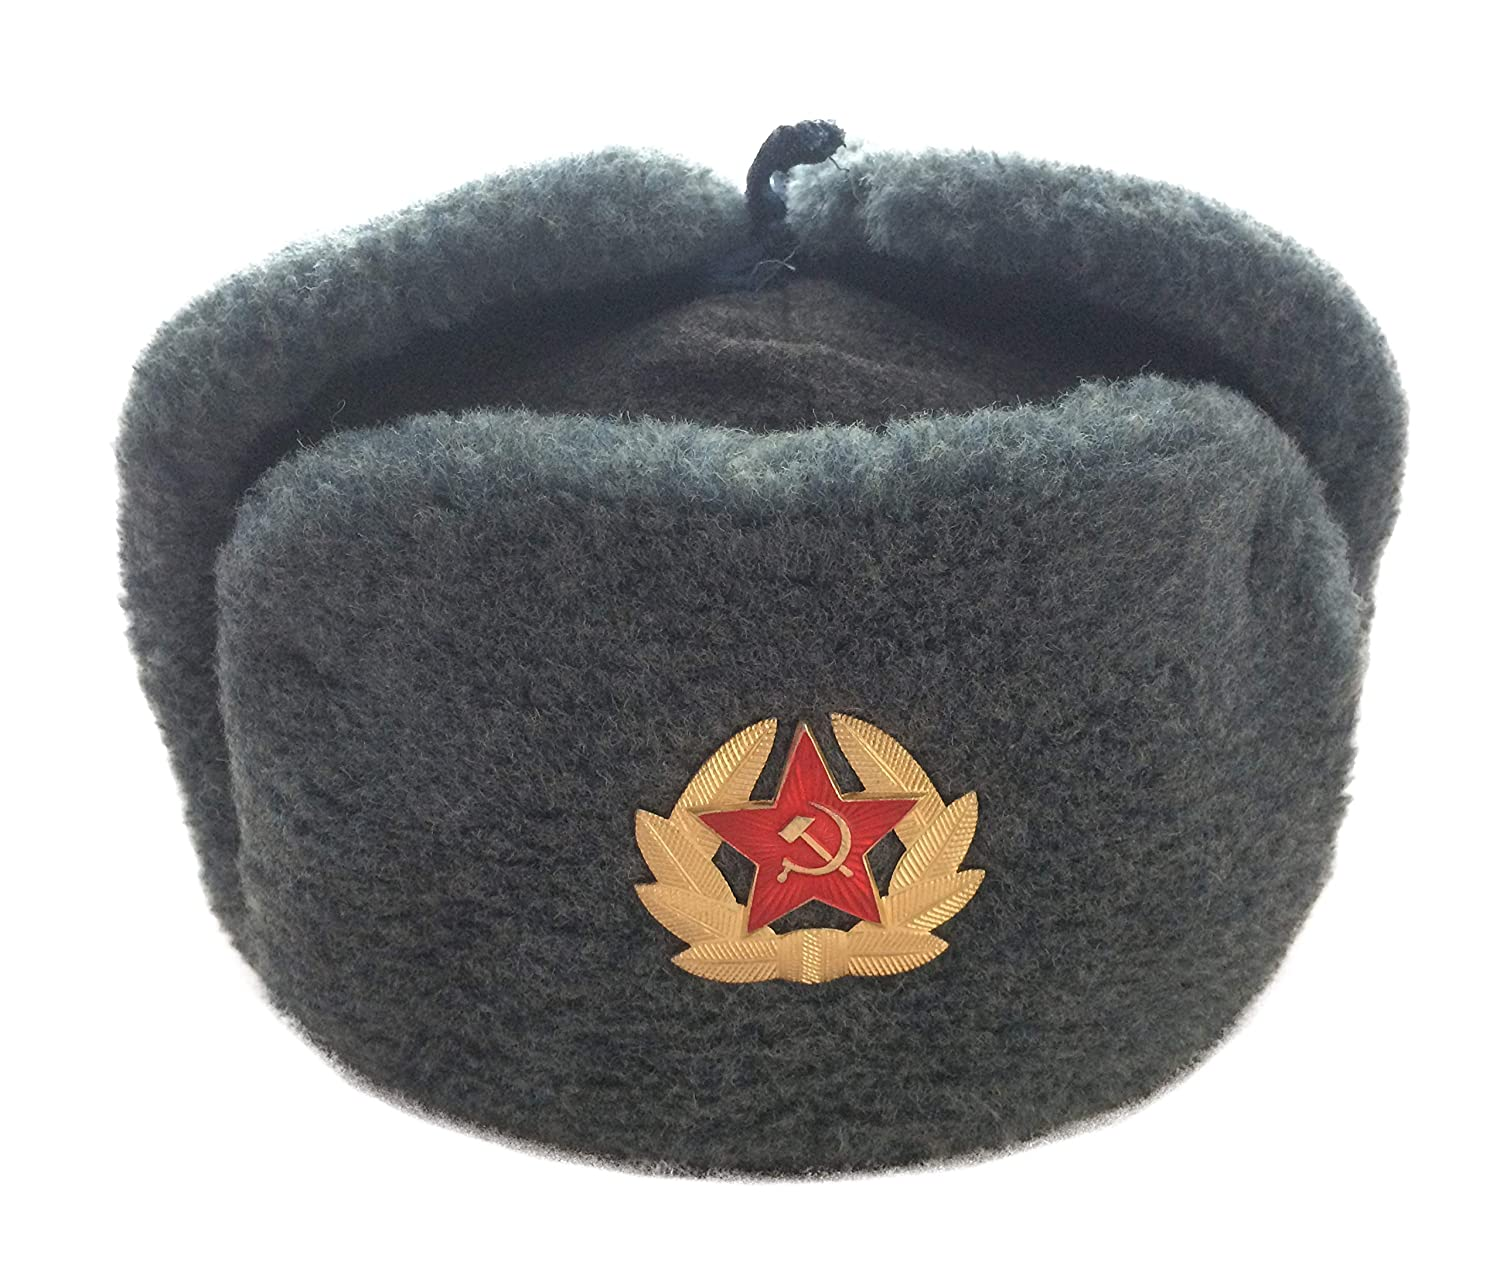 13e8979c9 Ganwear® Russian Soviet USSR Army Style Military Uniform Fur Ushanka Cold  War Hat Cap with Badge